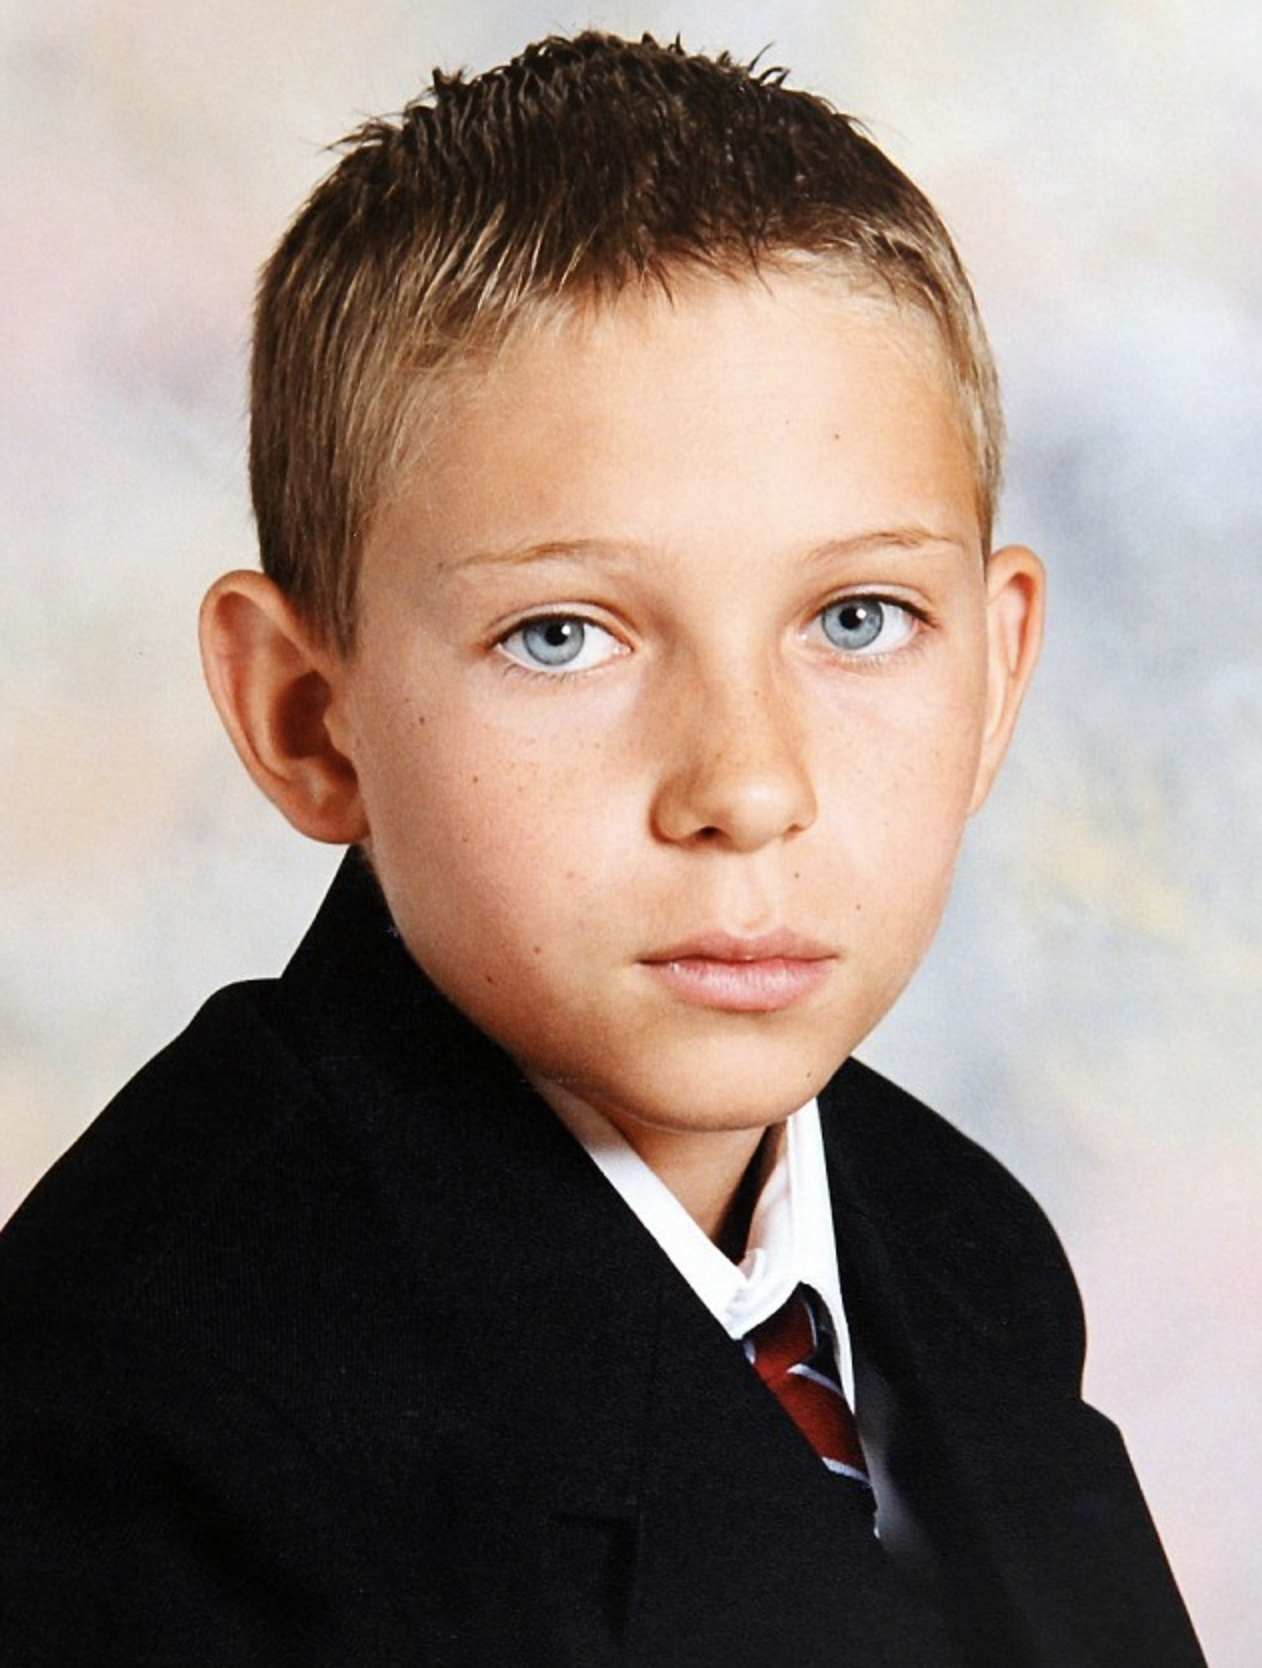 joey essex as a child joey essex net worth